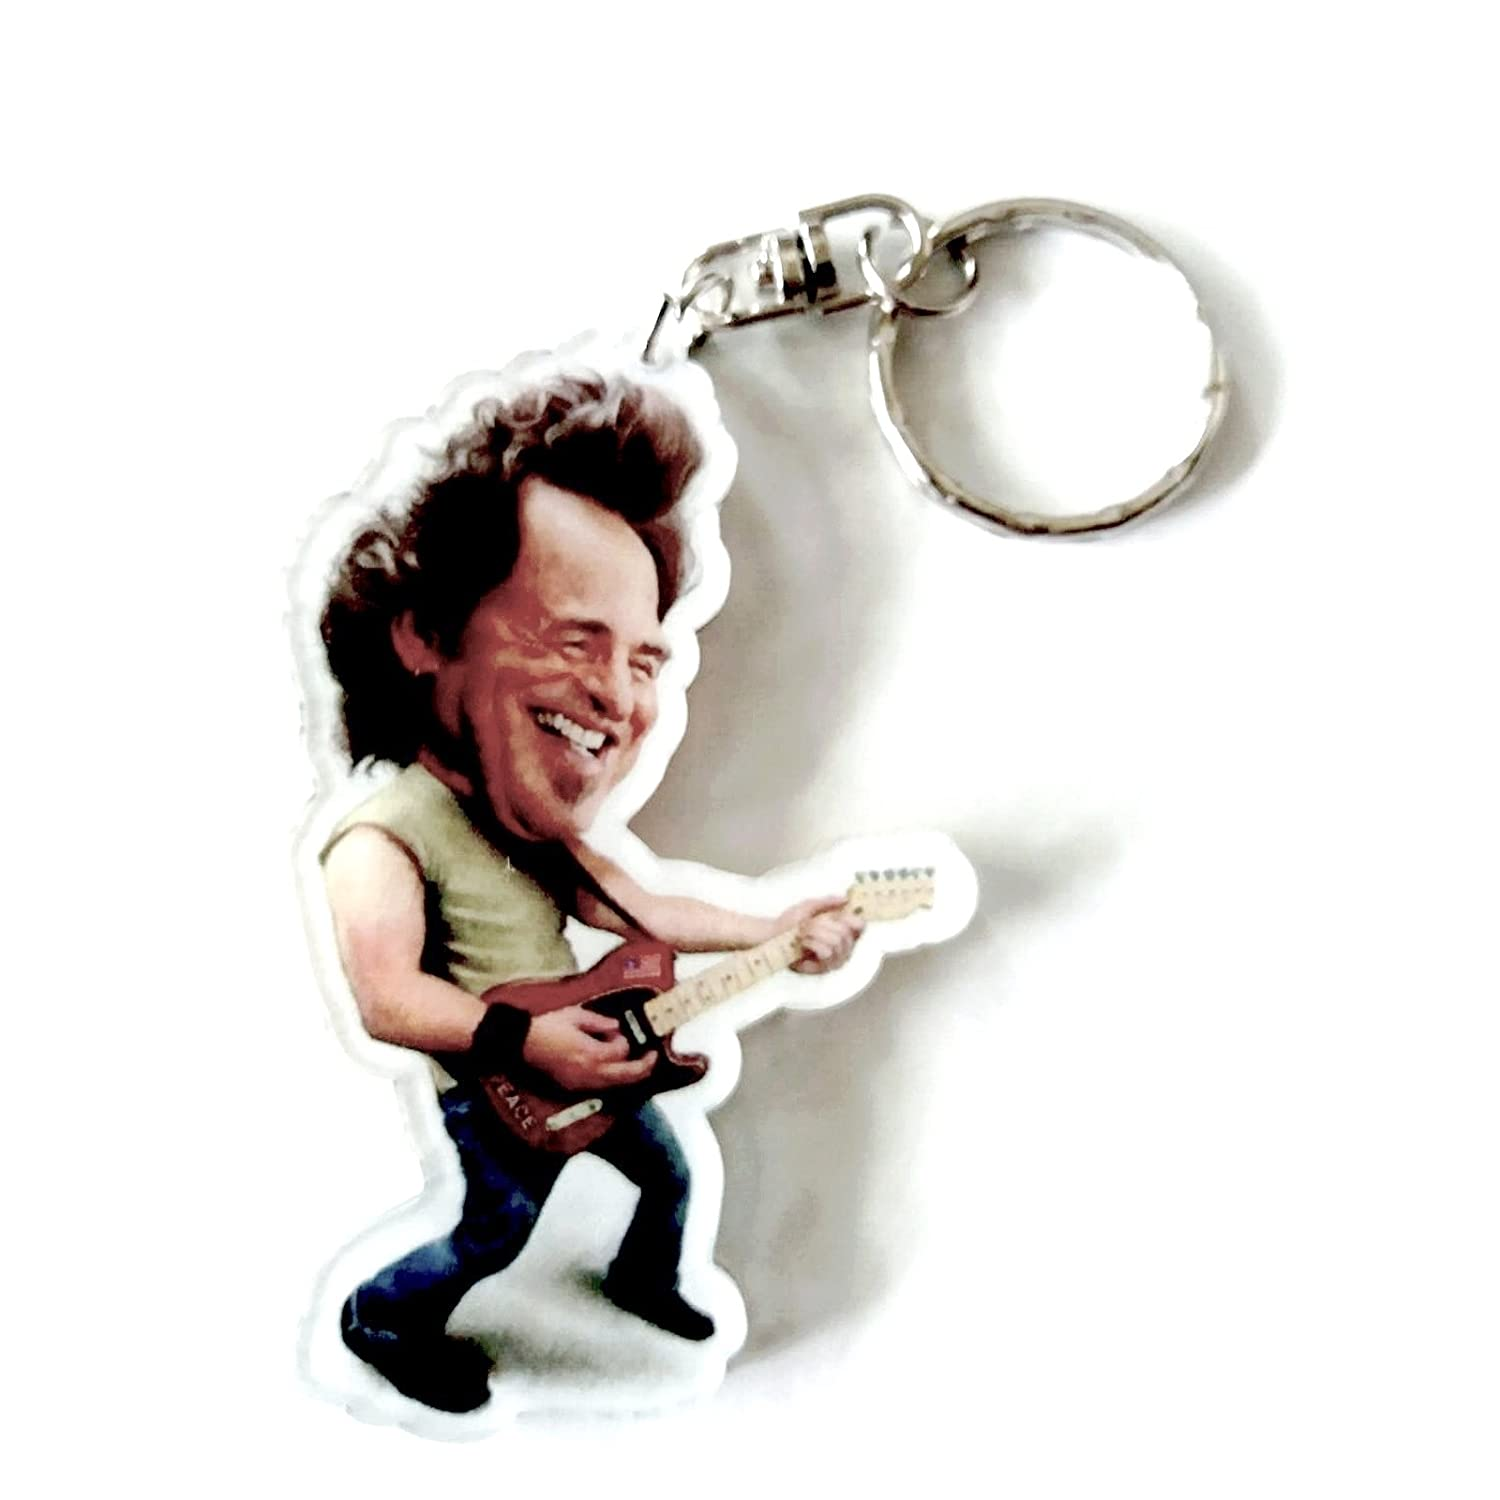 Portachiavi in acrilico caricature Music Legends - Bruce Springsteen Eurasia1 srl